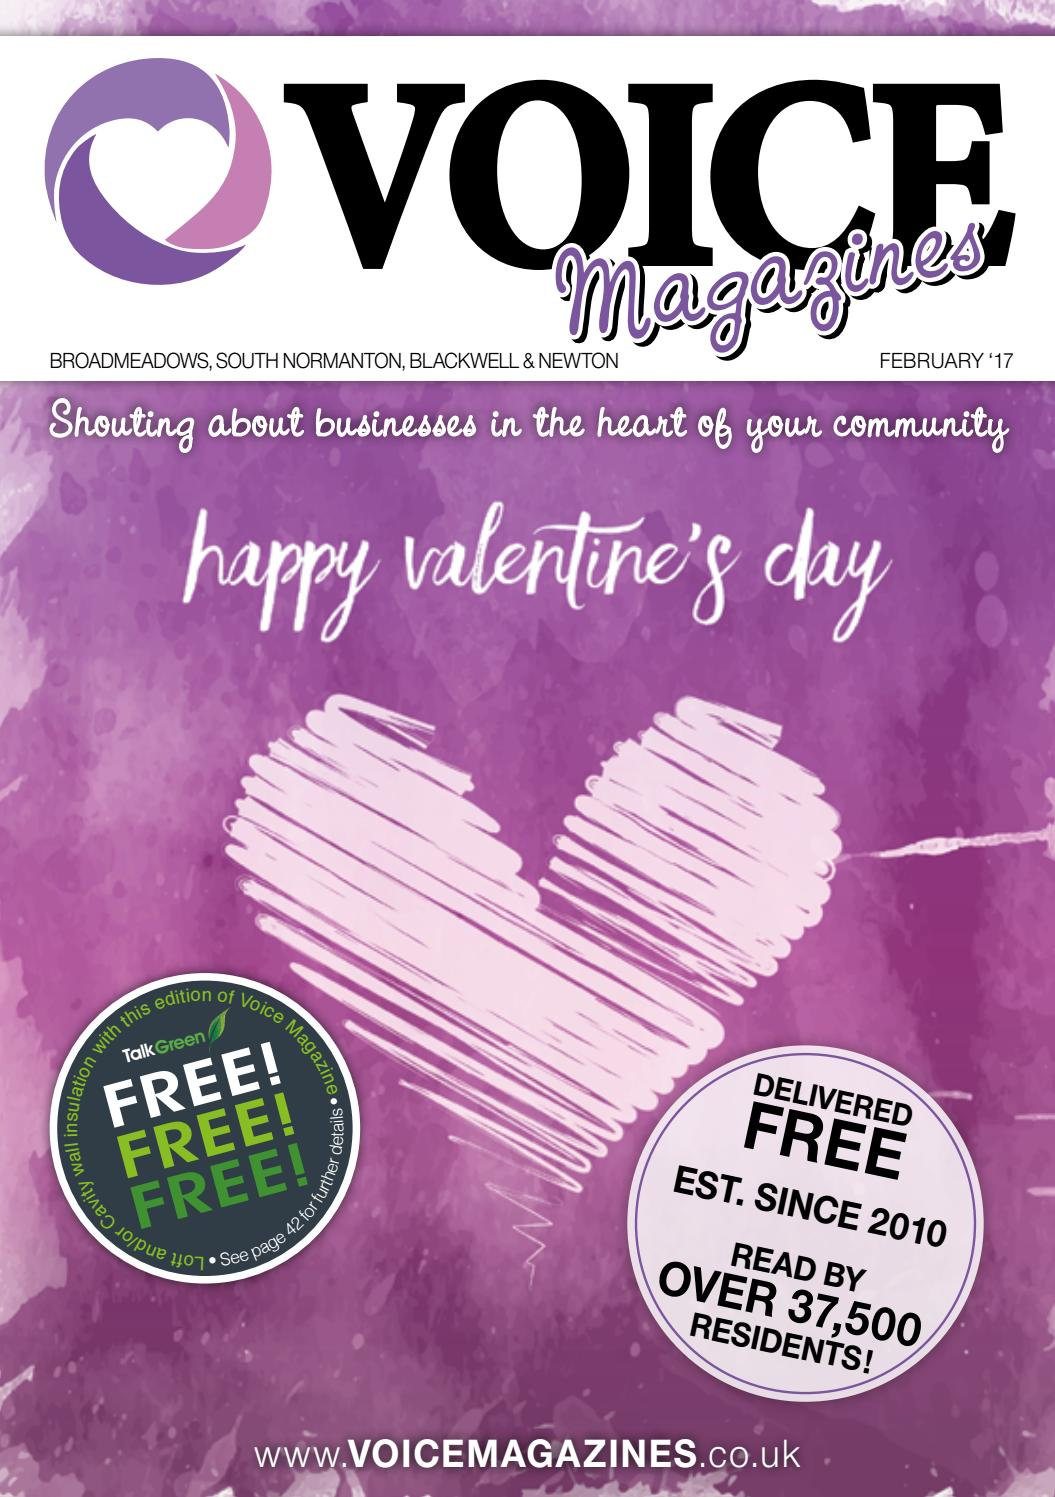 Voice Magazines - Broadmeadows, South Normanton, Blackwell